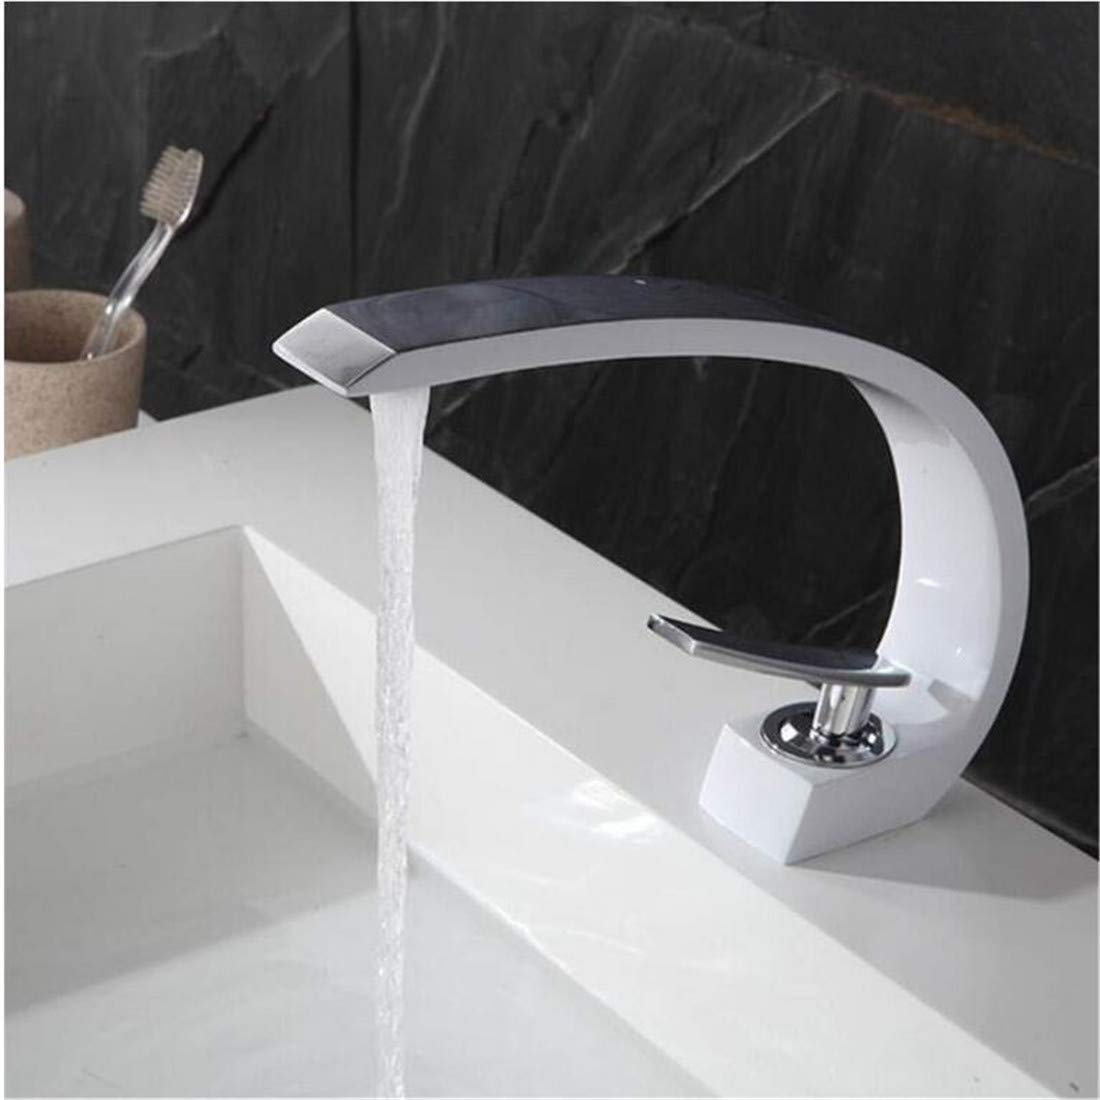 Modern High Quality Vintage Faucet Made Chrome Weiß Painting,Chrome Grün Painting Deck Mounted Faucet